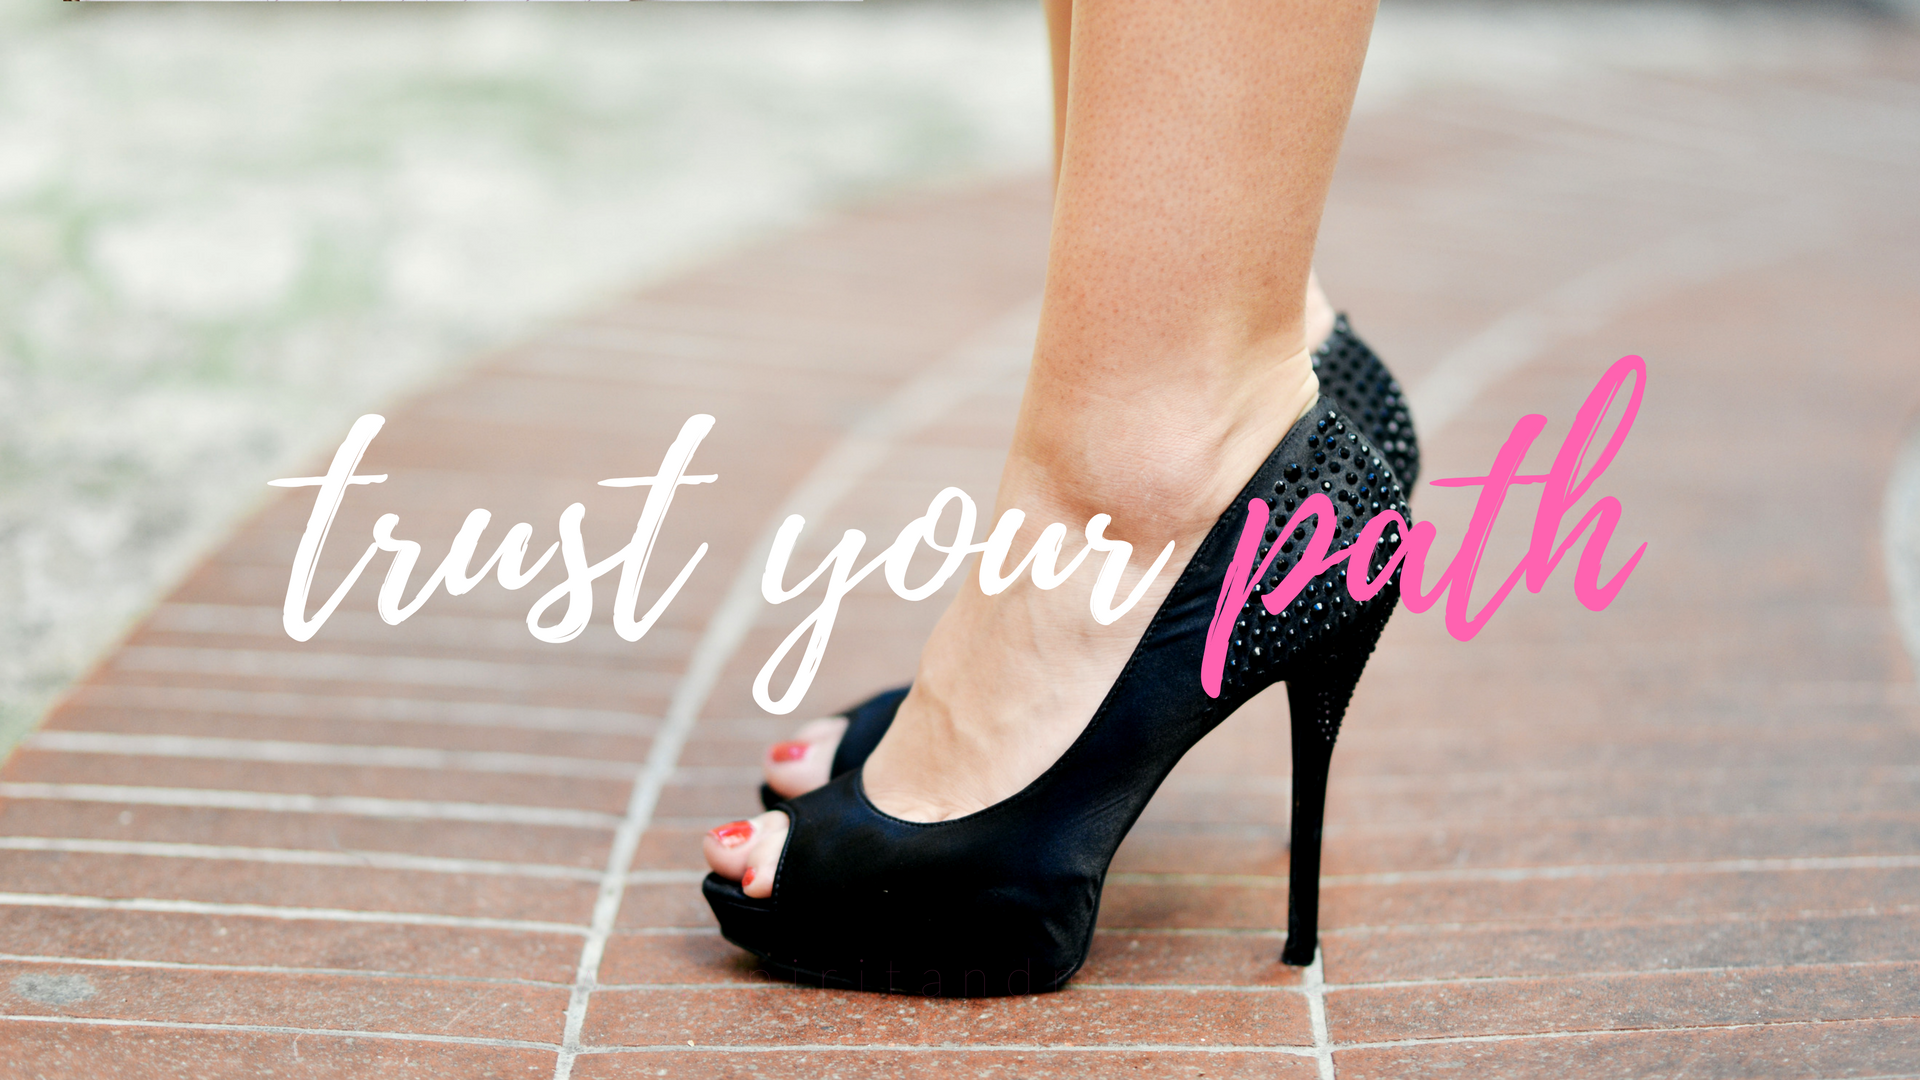 girl boss - trust your path - free desktop wallpaper